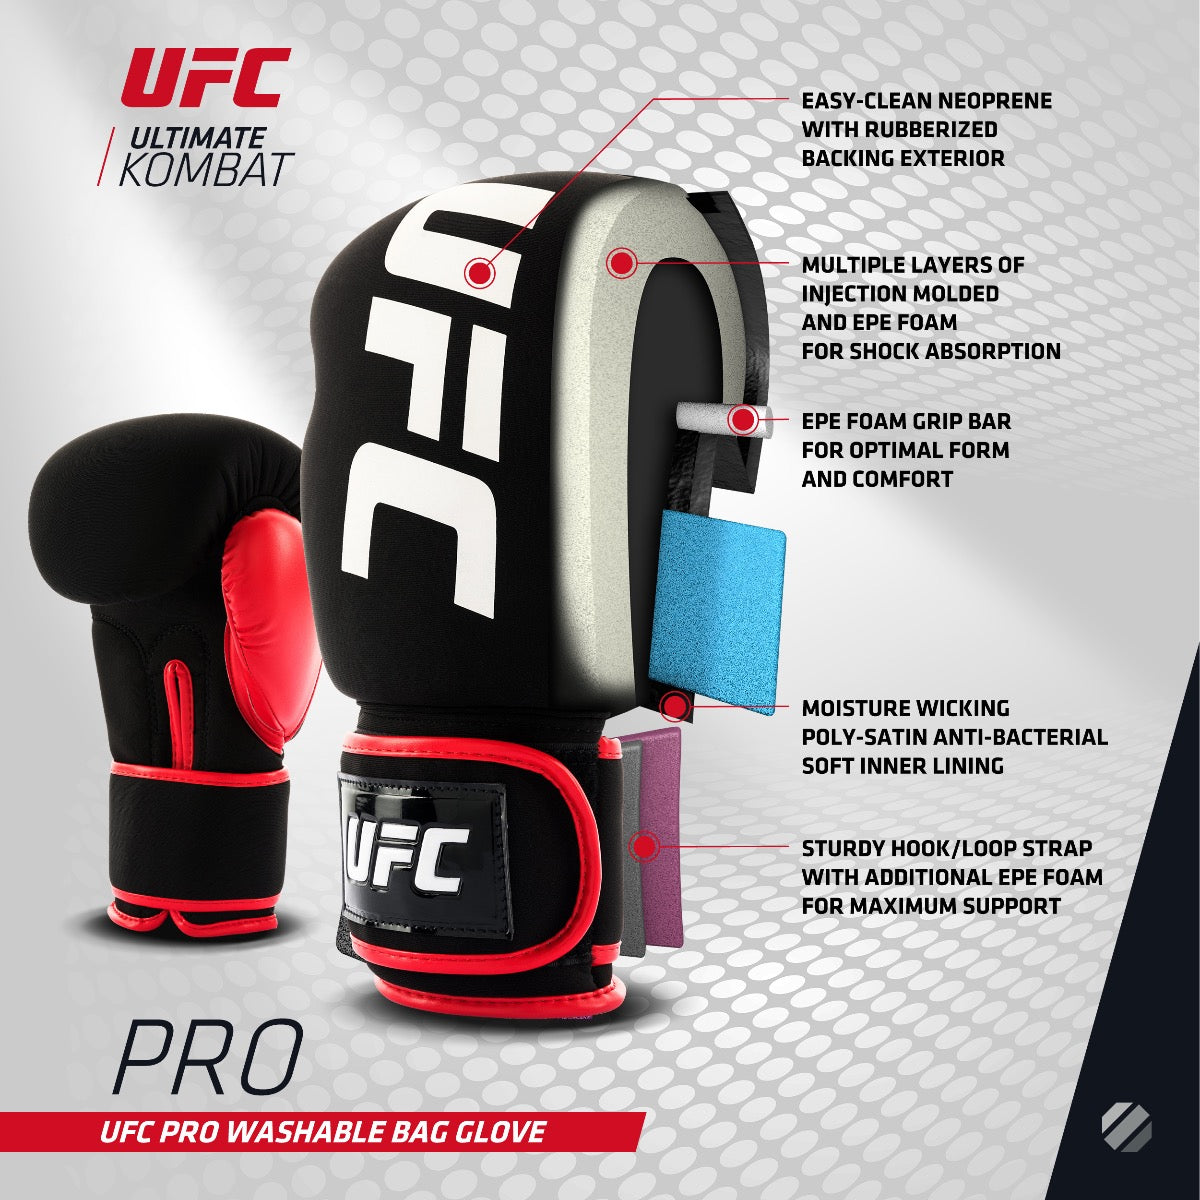 Cross section graphic showing the features of the UFC Pro Washable Bag Glove